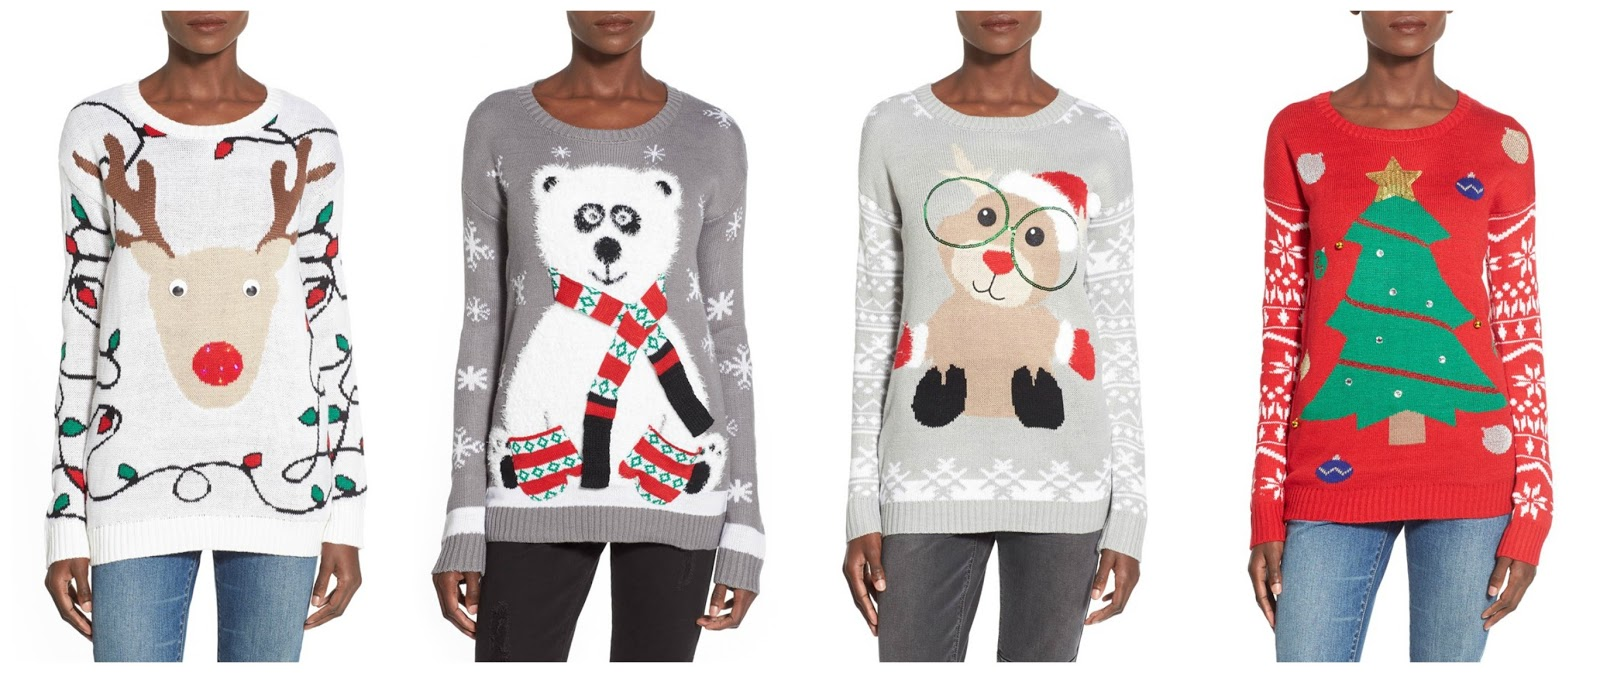 afa80d60659a This has nothing to do with anything…but friends…I saw these sweaters  online and about died…